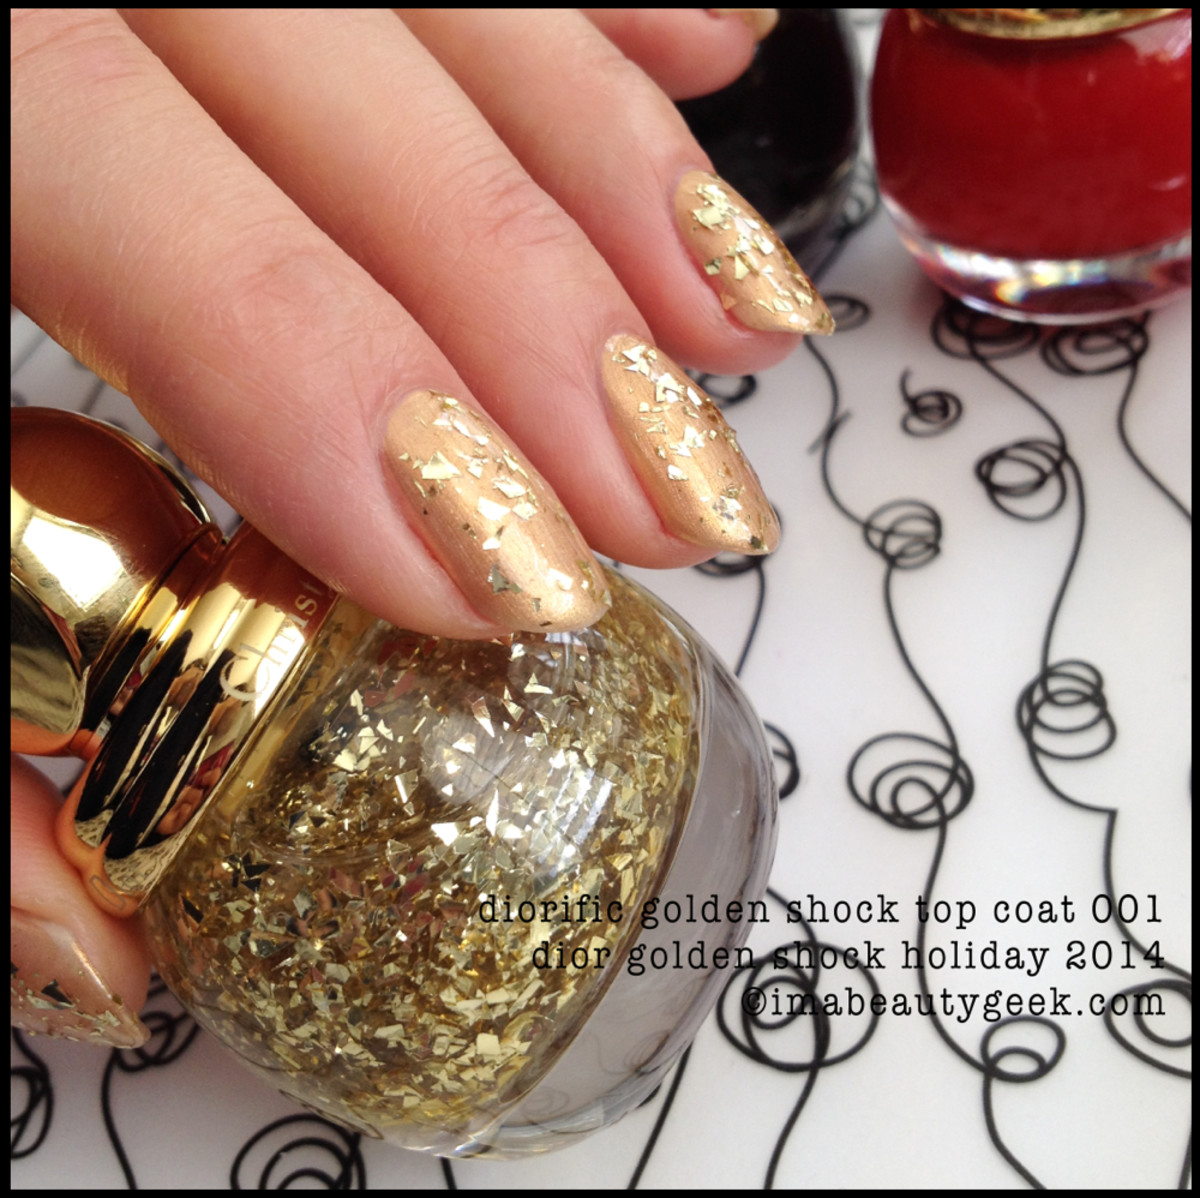 Dior Golden Shock top coat 001 Holiday 2014